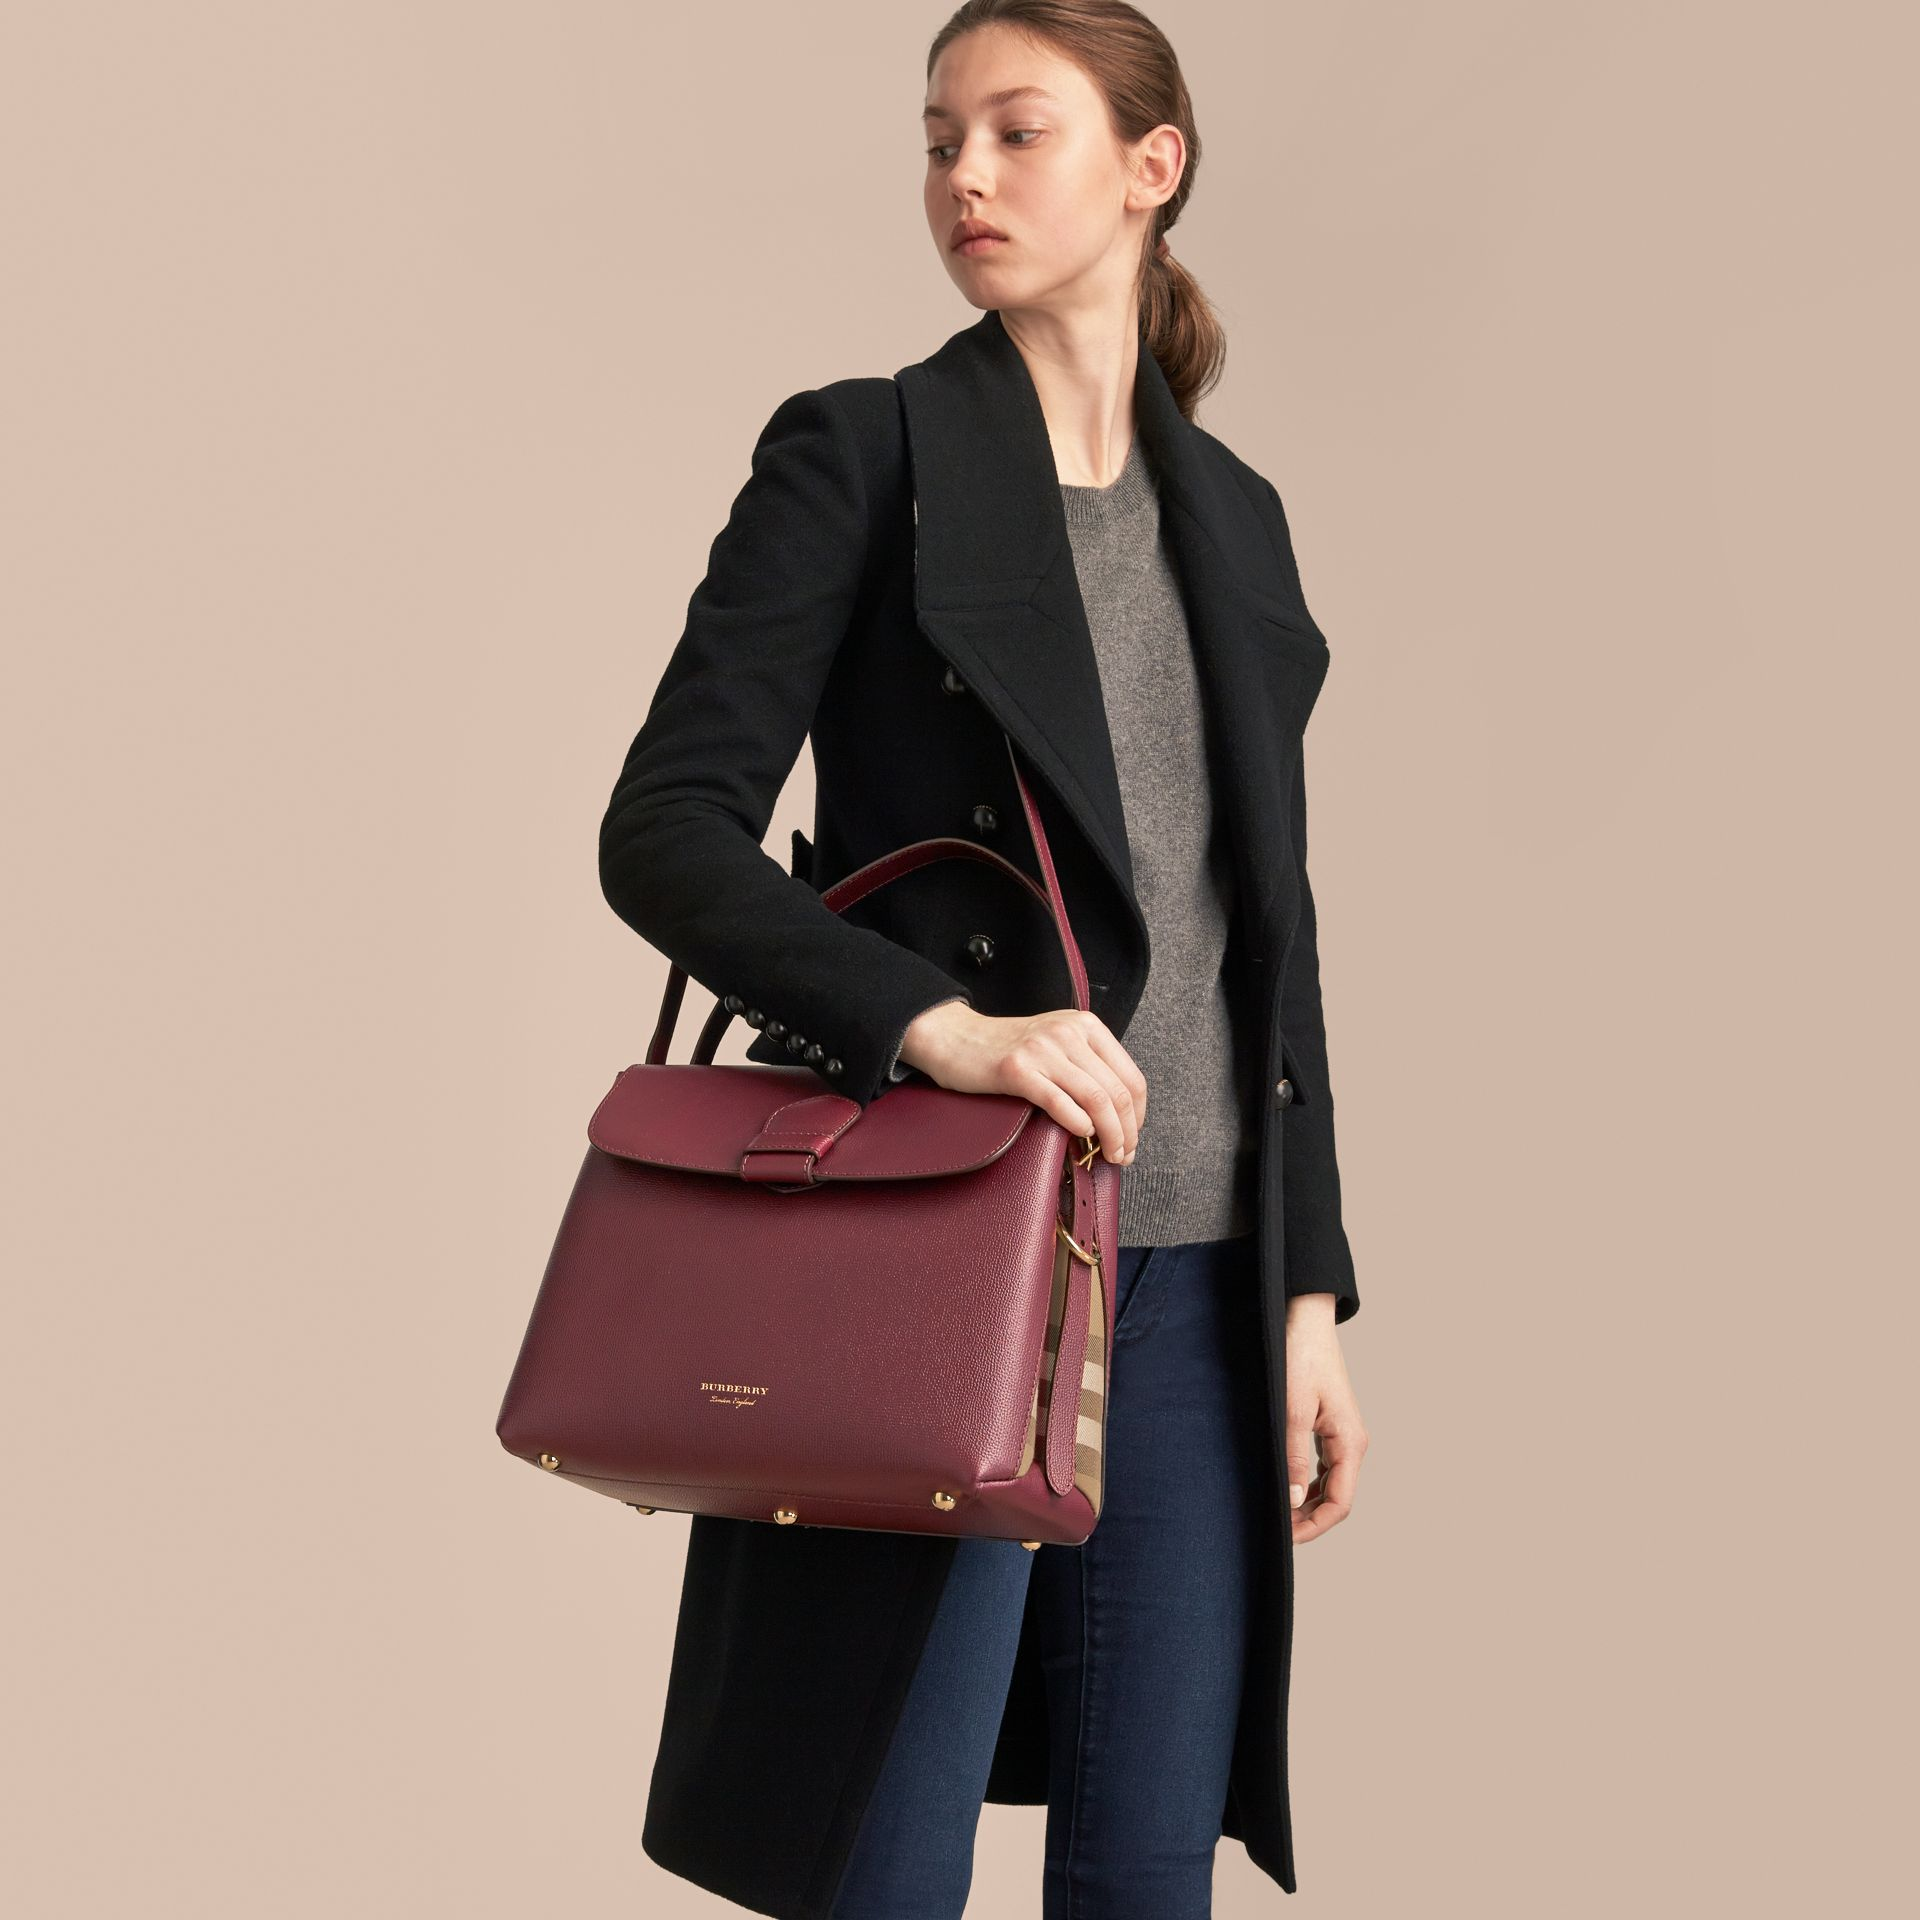 Medium Grainy Leather and House Check Tote Bag in Mahogany Red - Women | Burberry Australia - gallery image 2